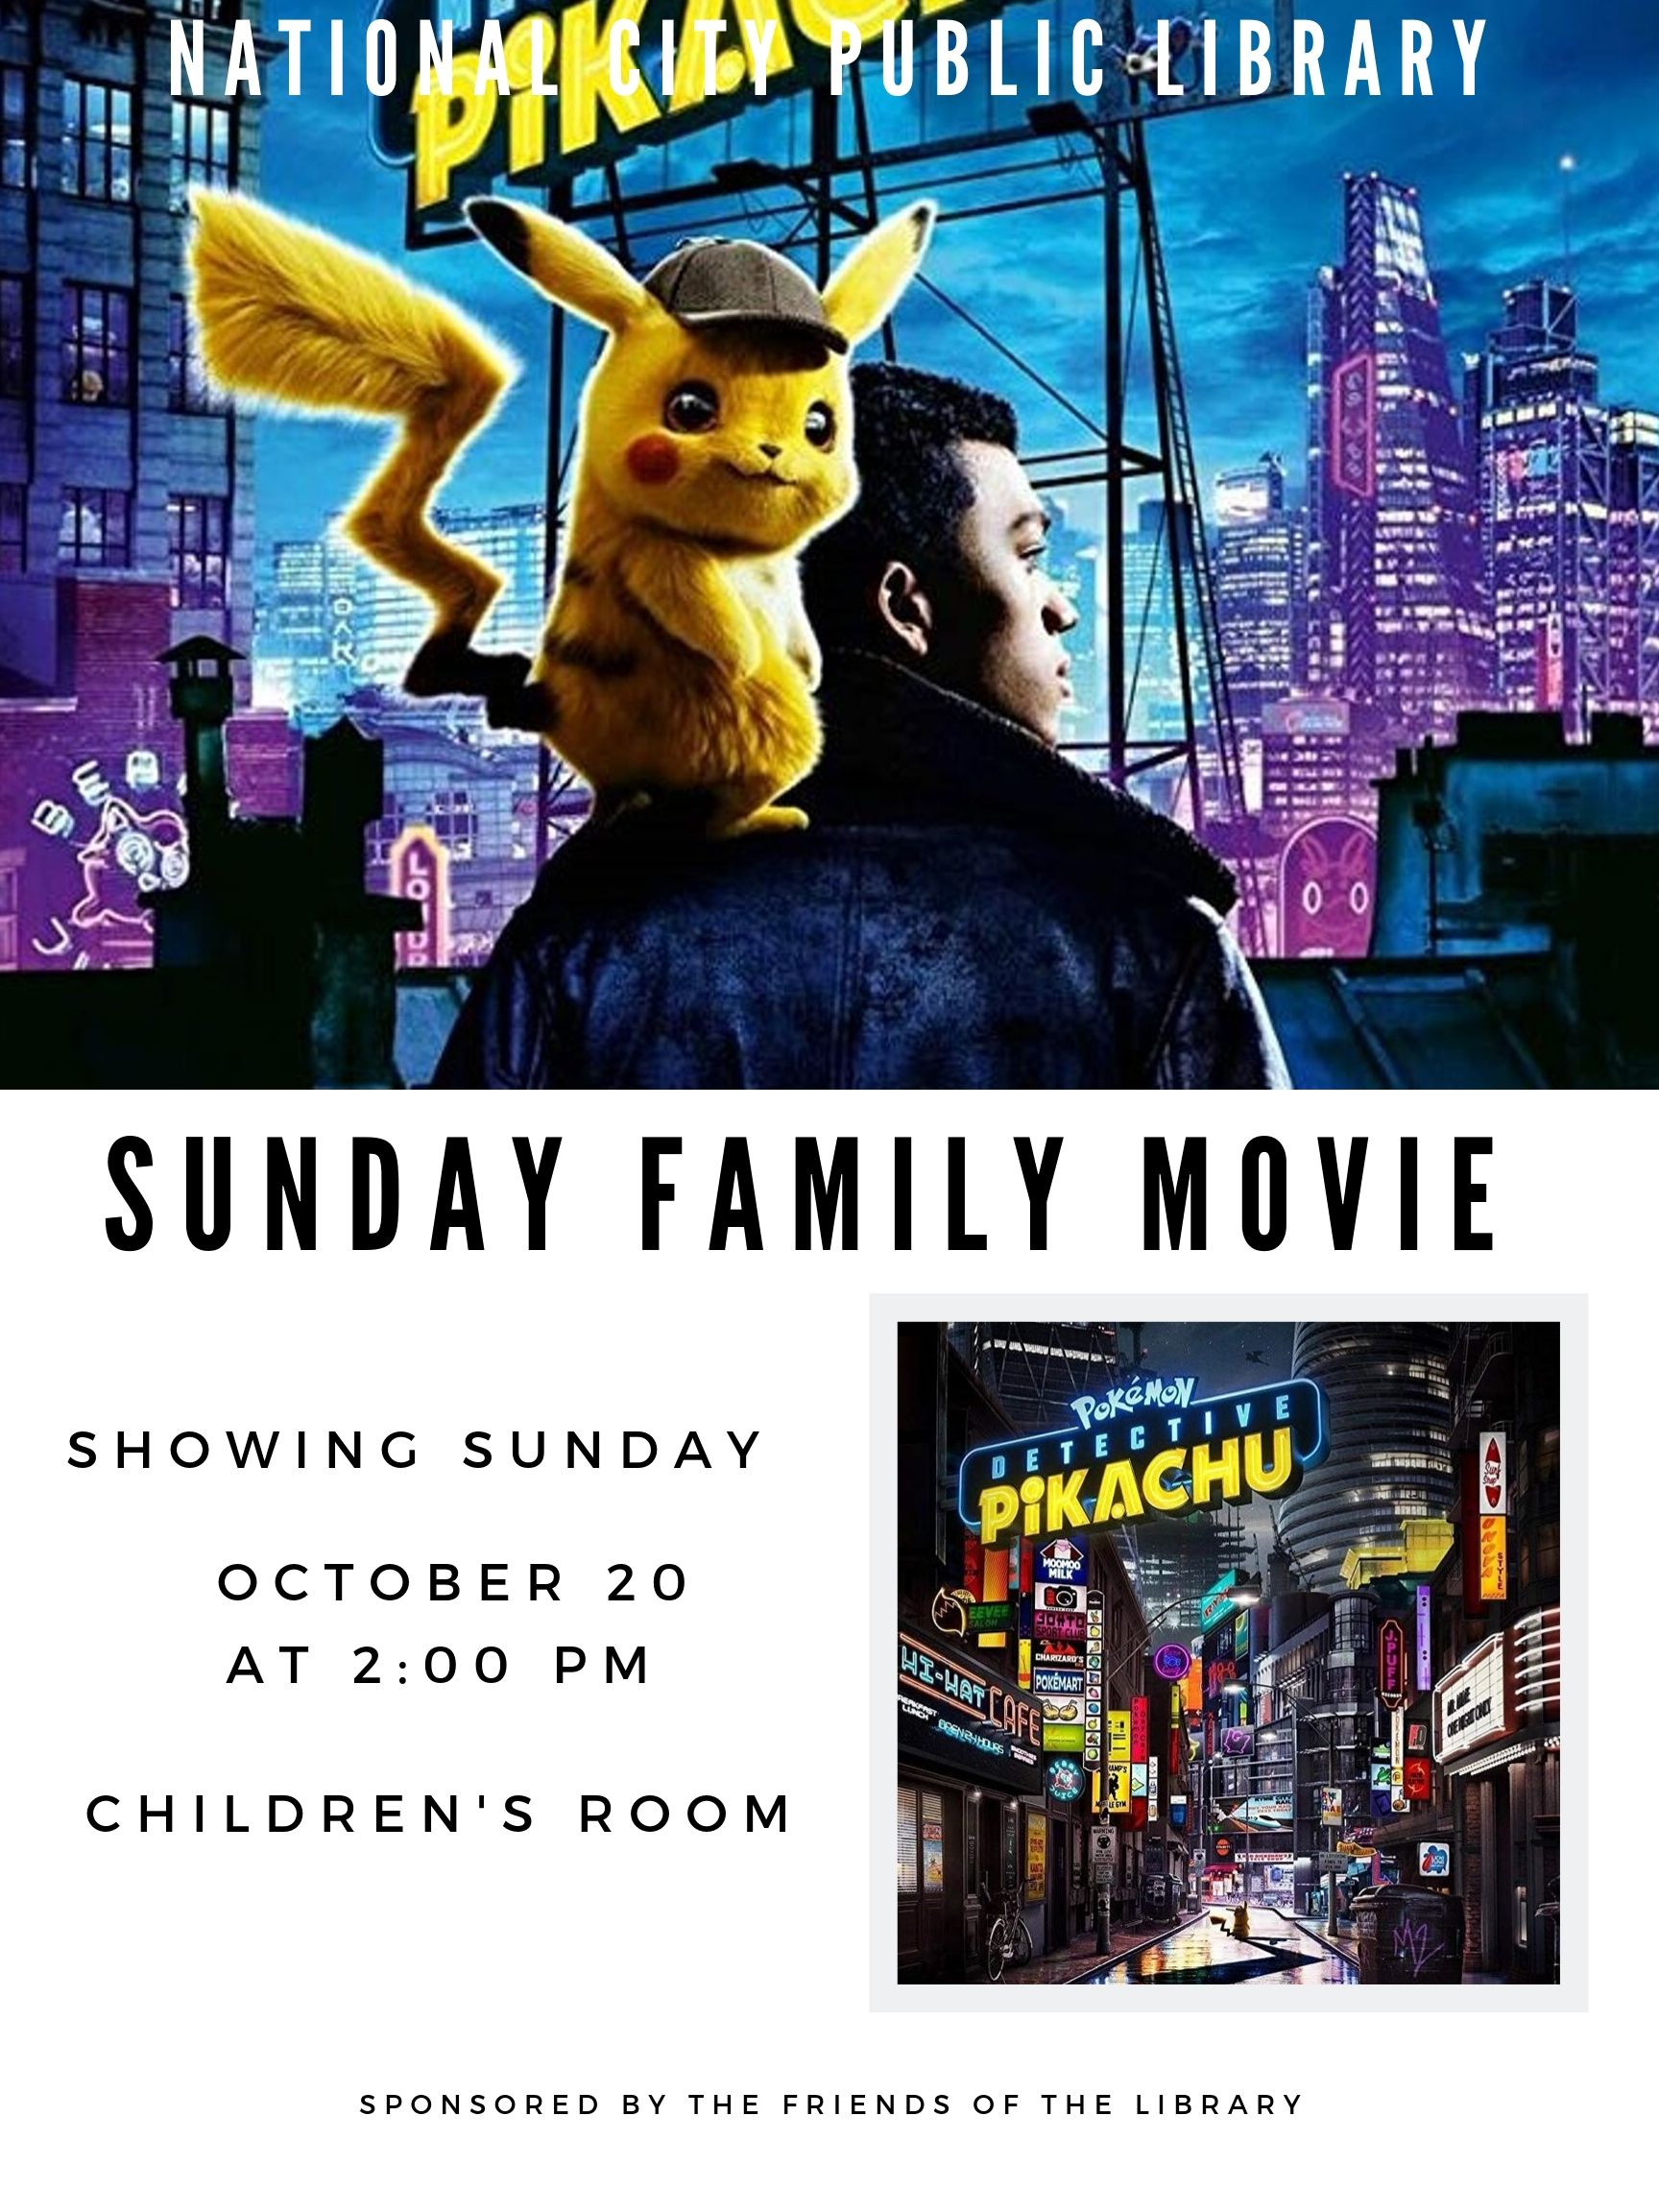 Family Movie Oct 20 - Detective Pikachu